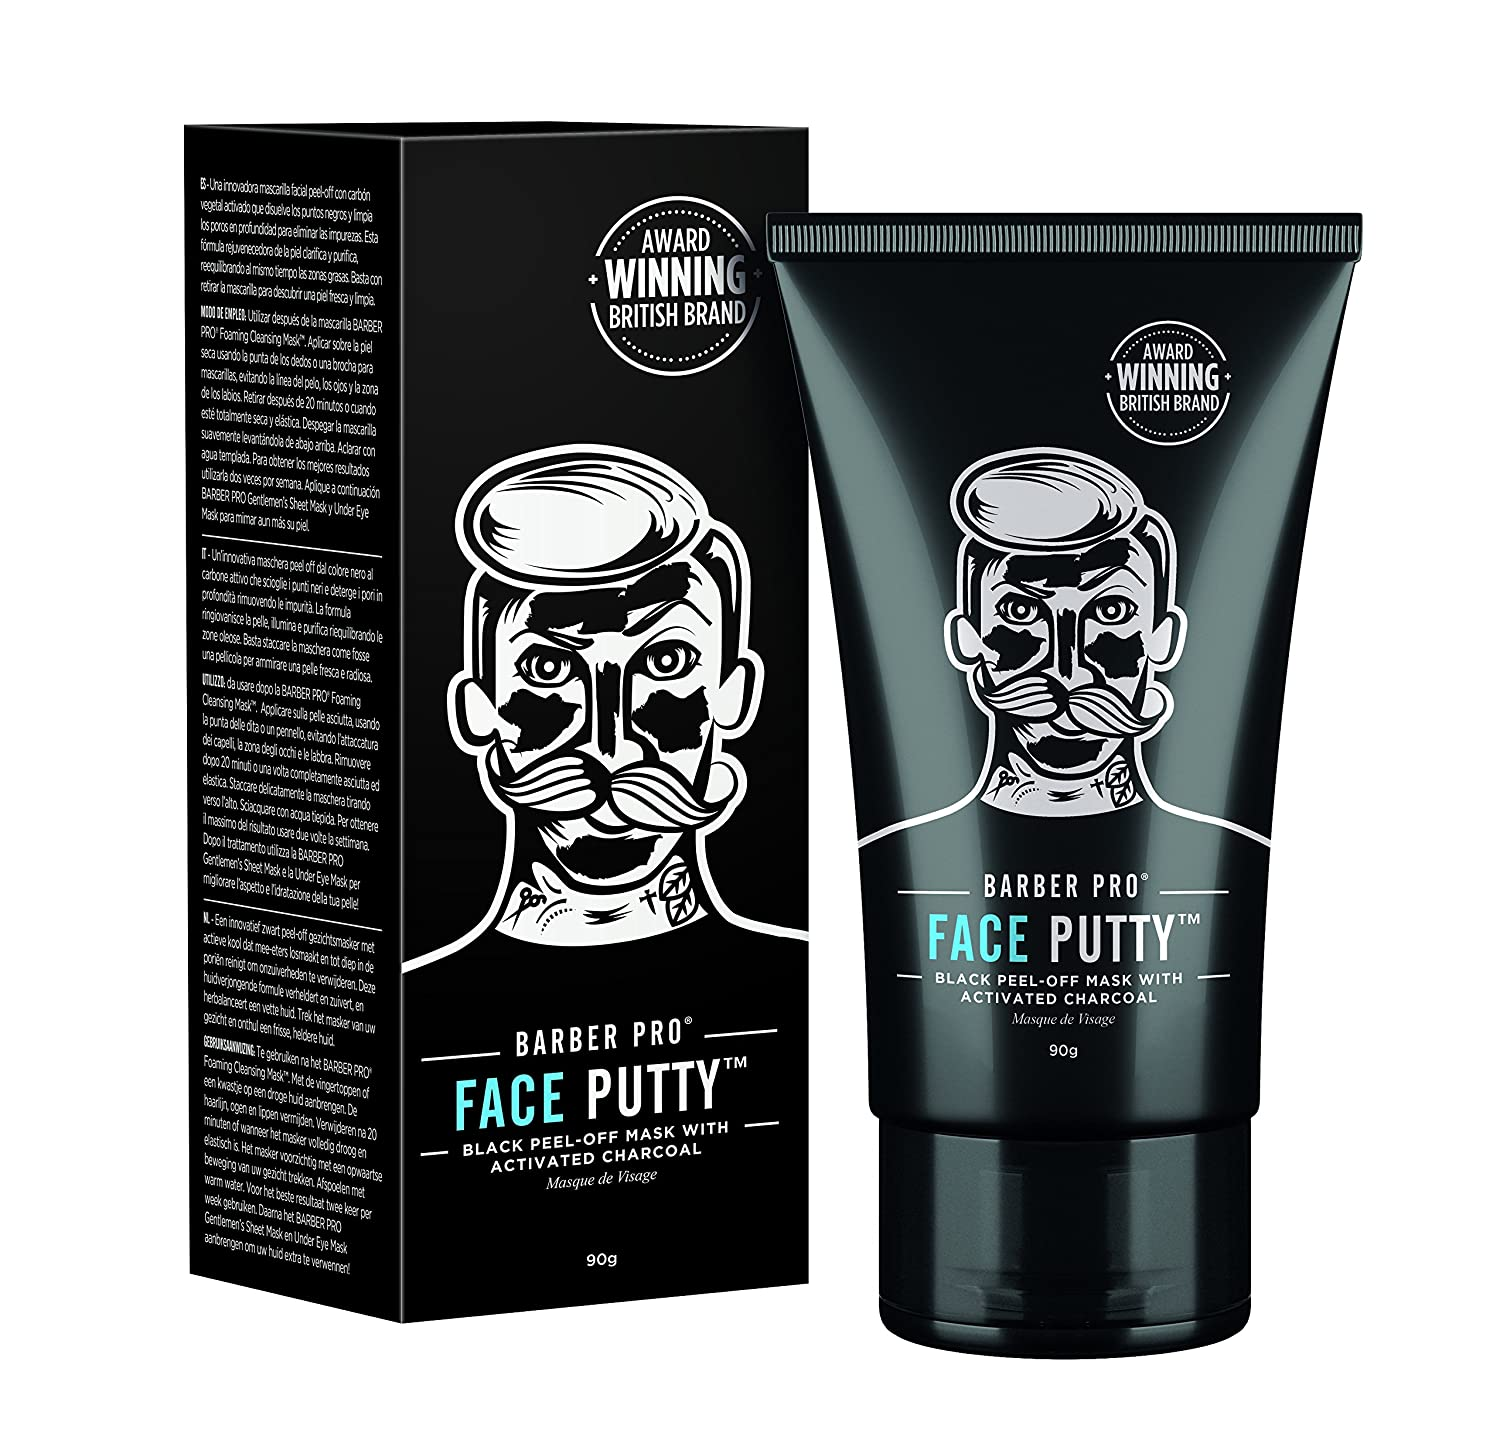 BARBER PRO FACE PUTTY black peel-off mask for men with activated charcoal 90G TUBE BeautyPro Ltd 30087TU